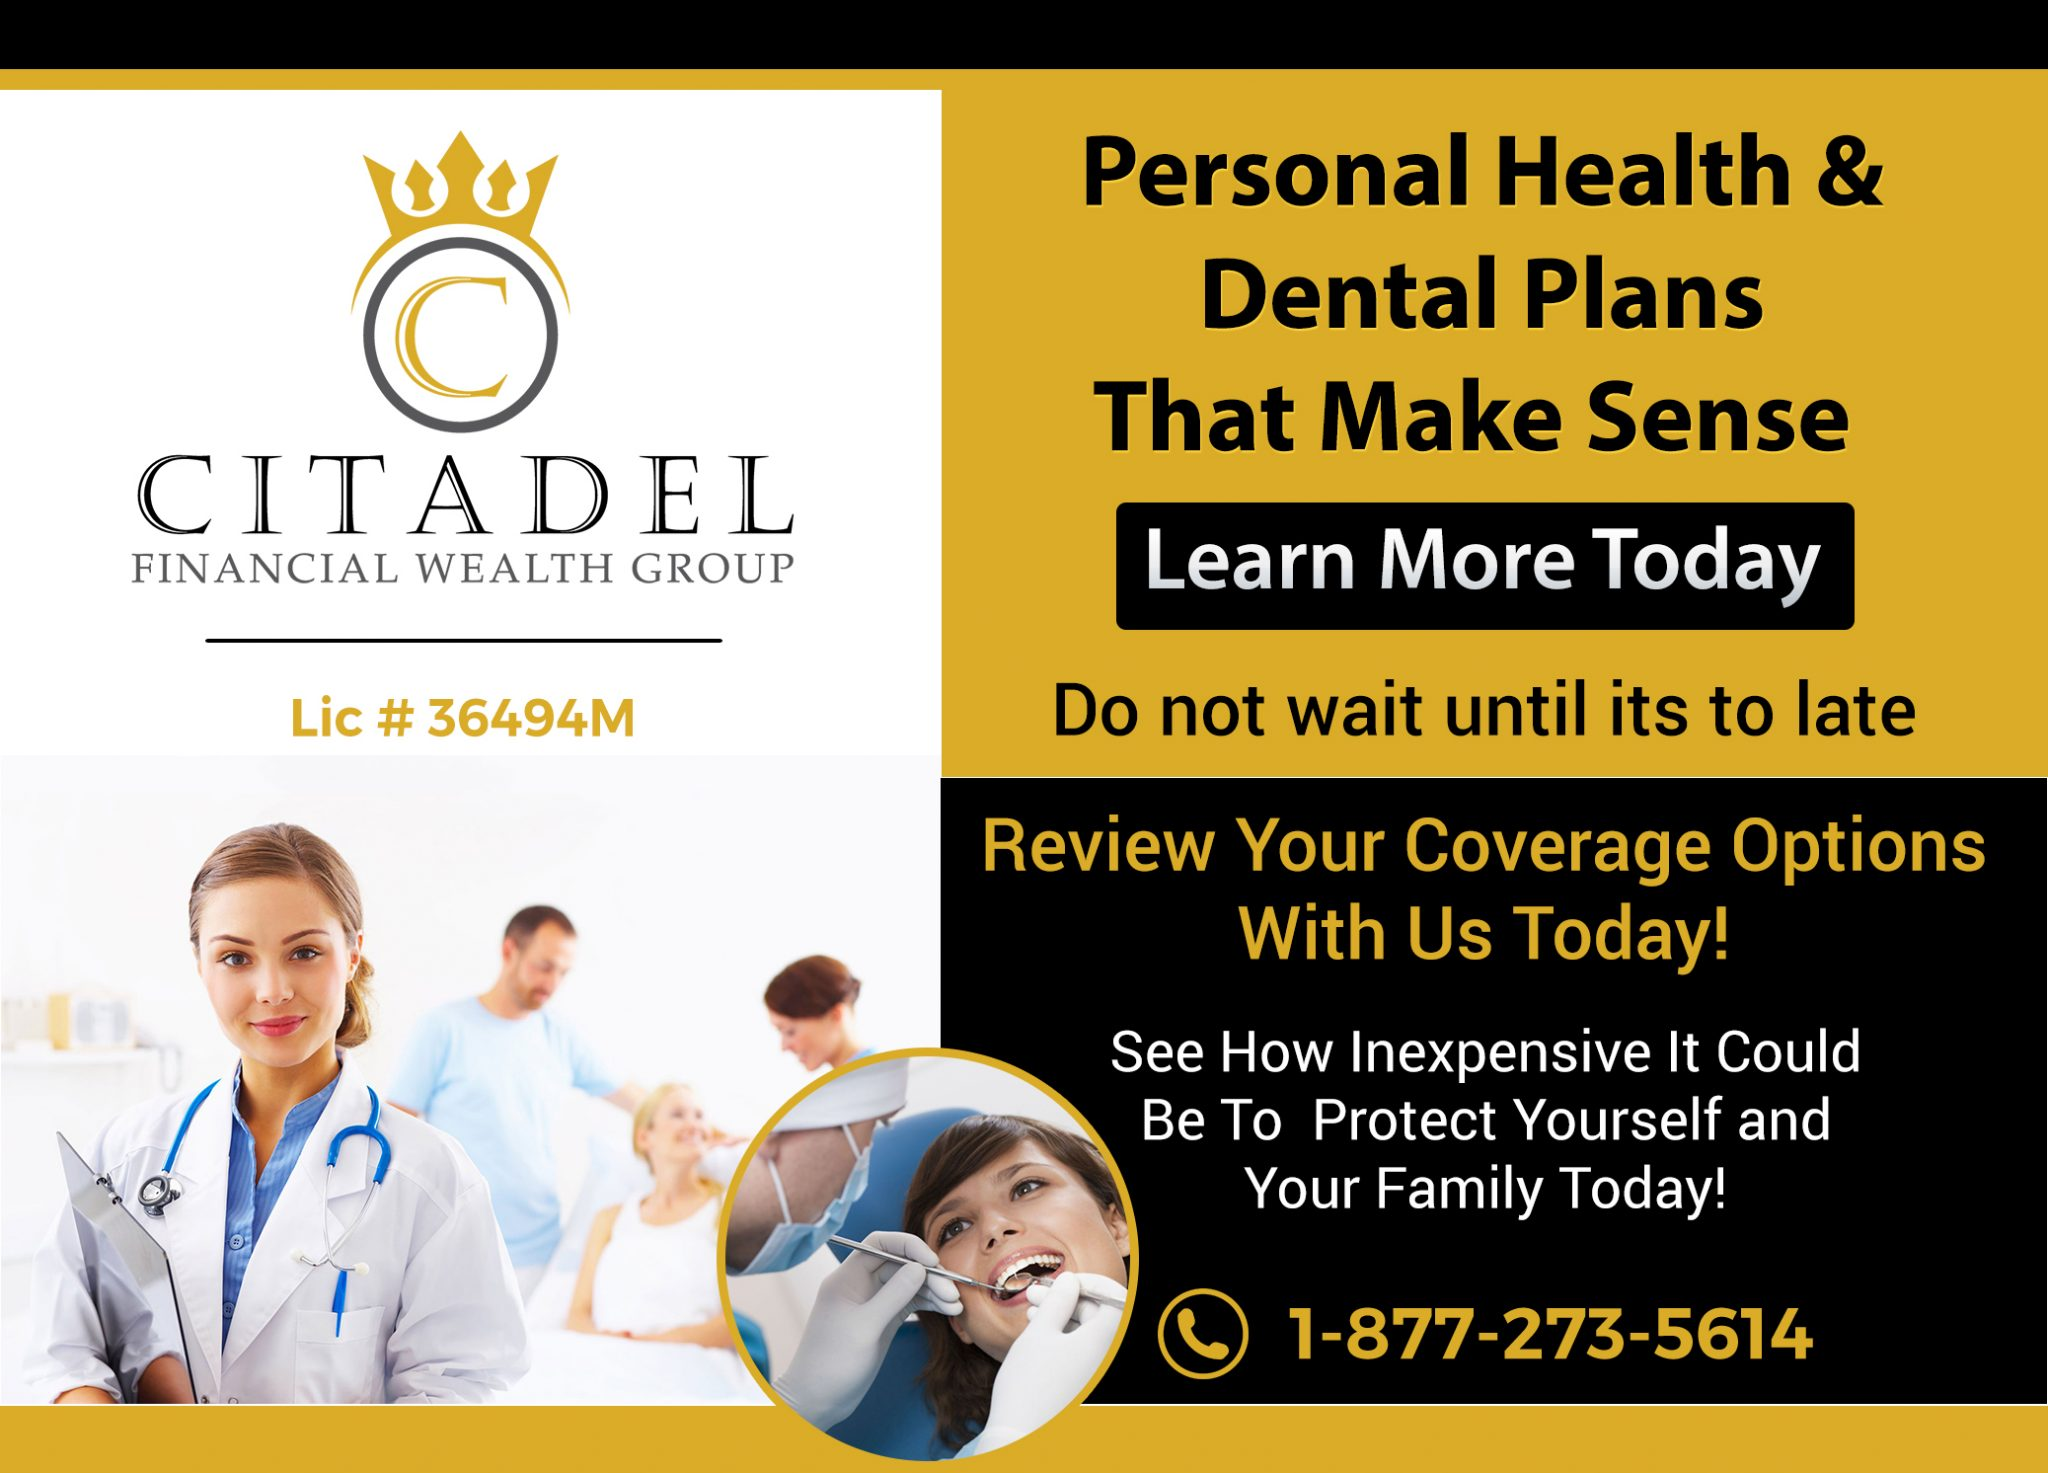 Citadel Financial Wealth Group -life insurance-life insurance for children - Critical Illness Insurance- Disability Insurance - Group Insurance Plans - Group Insurance - SME - Guaranteed Issue Life Insurance - No Medcial Life Insurance - Non Medical Life Insurance - Life Annuity - Life Insurance - Whole Life Insurance - Term Life Insurance -Mortgage Insurance - Mortgage life insurance - Life Insurance For Business Owners - Overhead expense Insurance - Long Term Care Insurance - Personal Banking - Open Bank Account - Personal Health Insurance - health Insurance - Travel Insurance -Health & dental insurance- health and dental insurance - RESP - Segregated Funds - Senior Life Insurance - Final Expenses - Final Expense Insurance - Final Expenses Insurance - Universal Life Insurance - Visitor To Canada Super Visa Insurance - 9